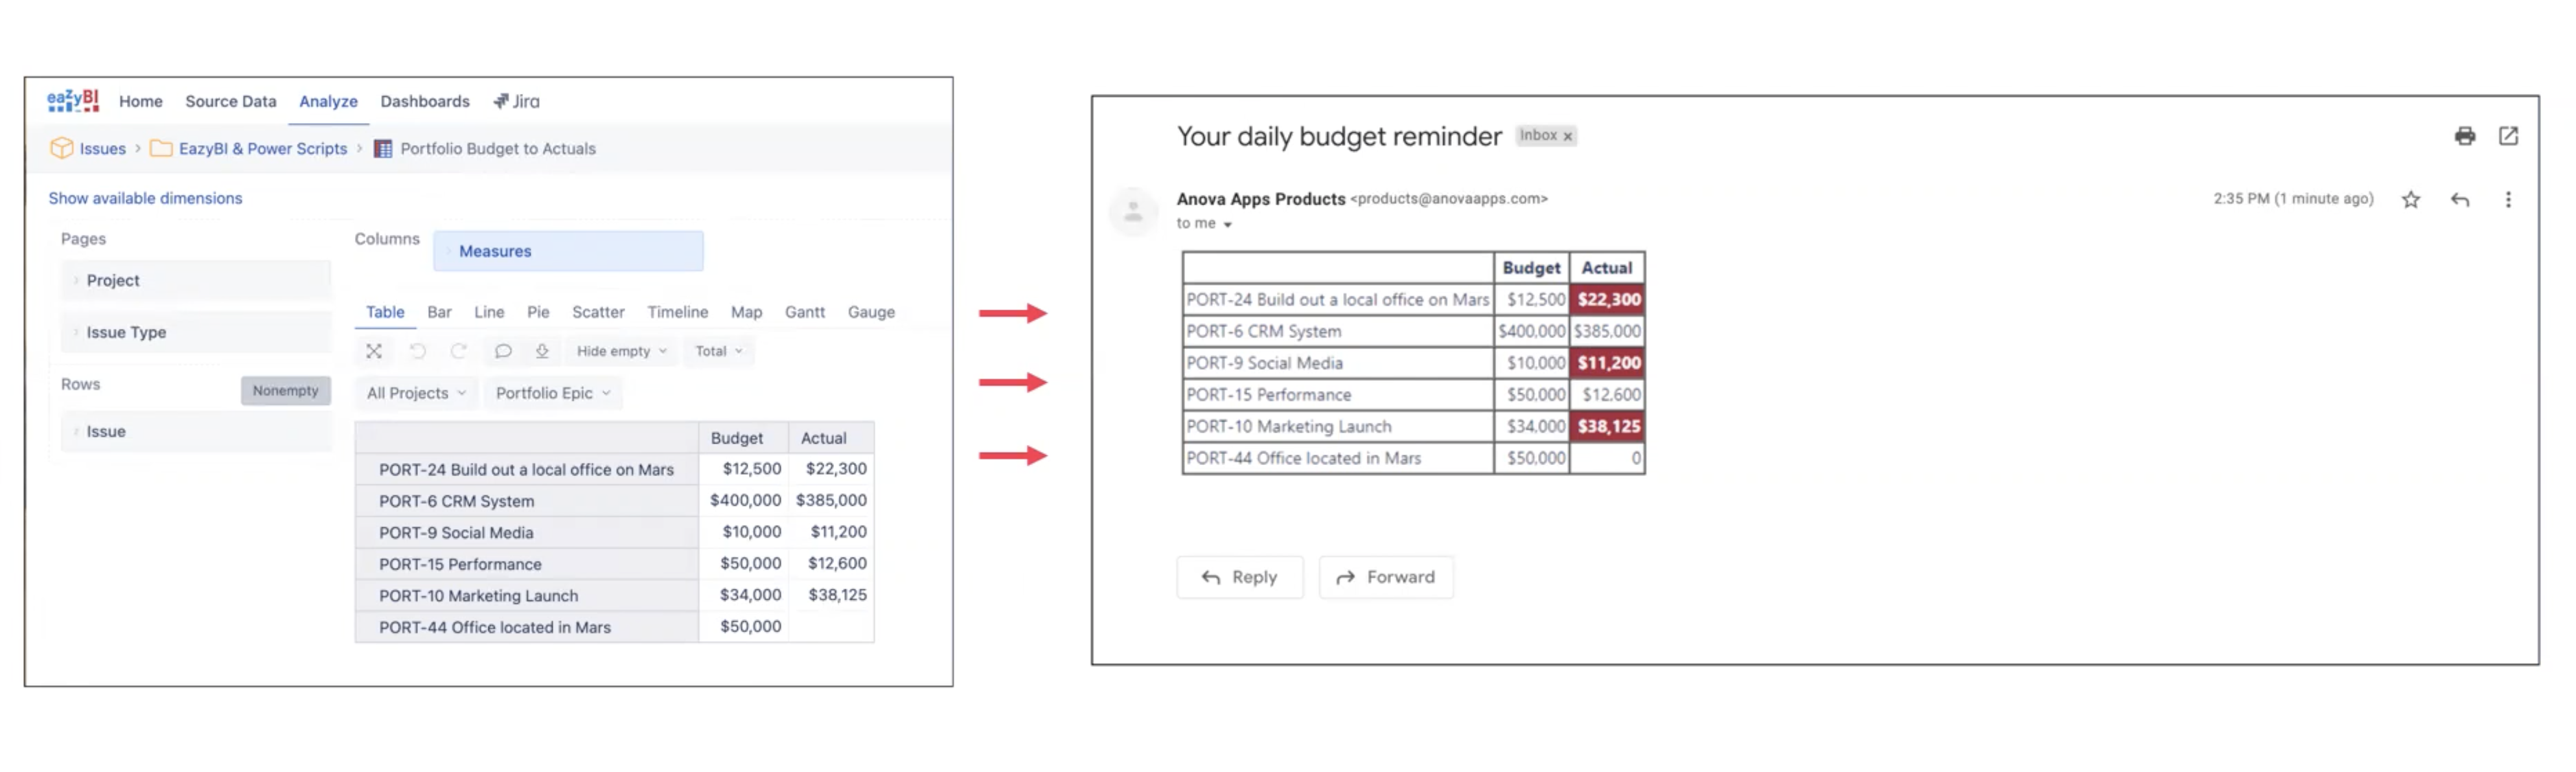 Daily budget reminder set up using EazyBI and Power Scripts for Jira